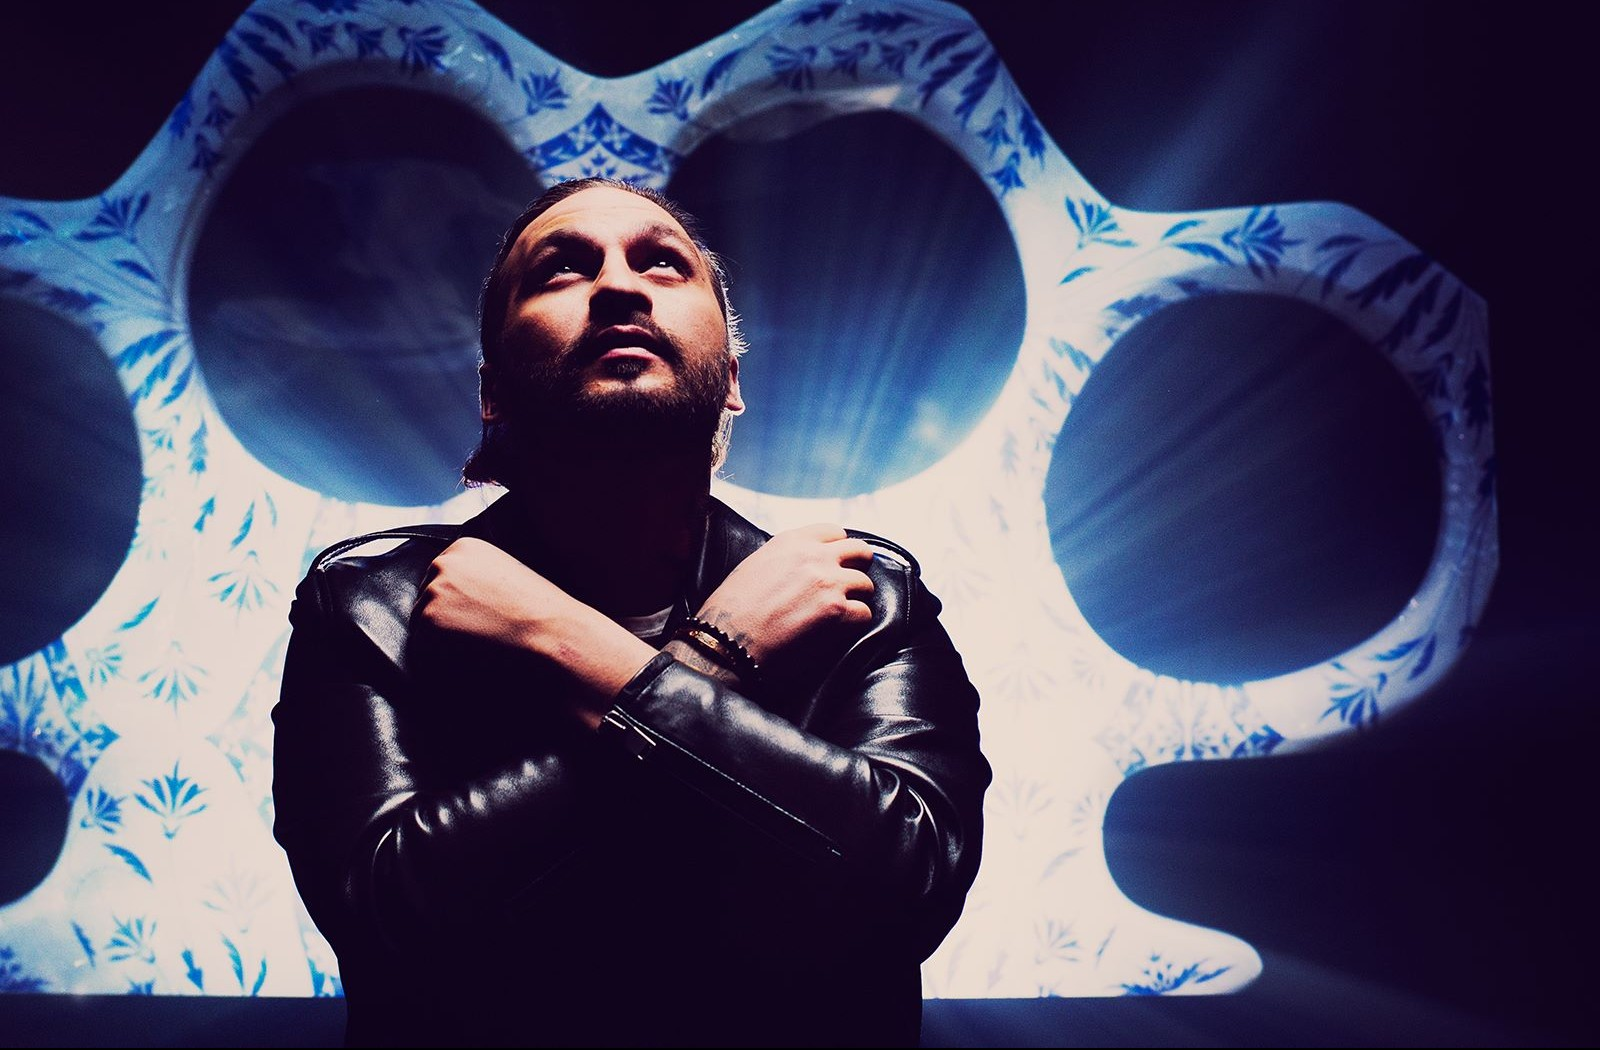 Steve Angello Releases Album Wild Youth Chapter One [SIZE]